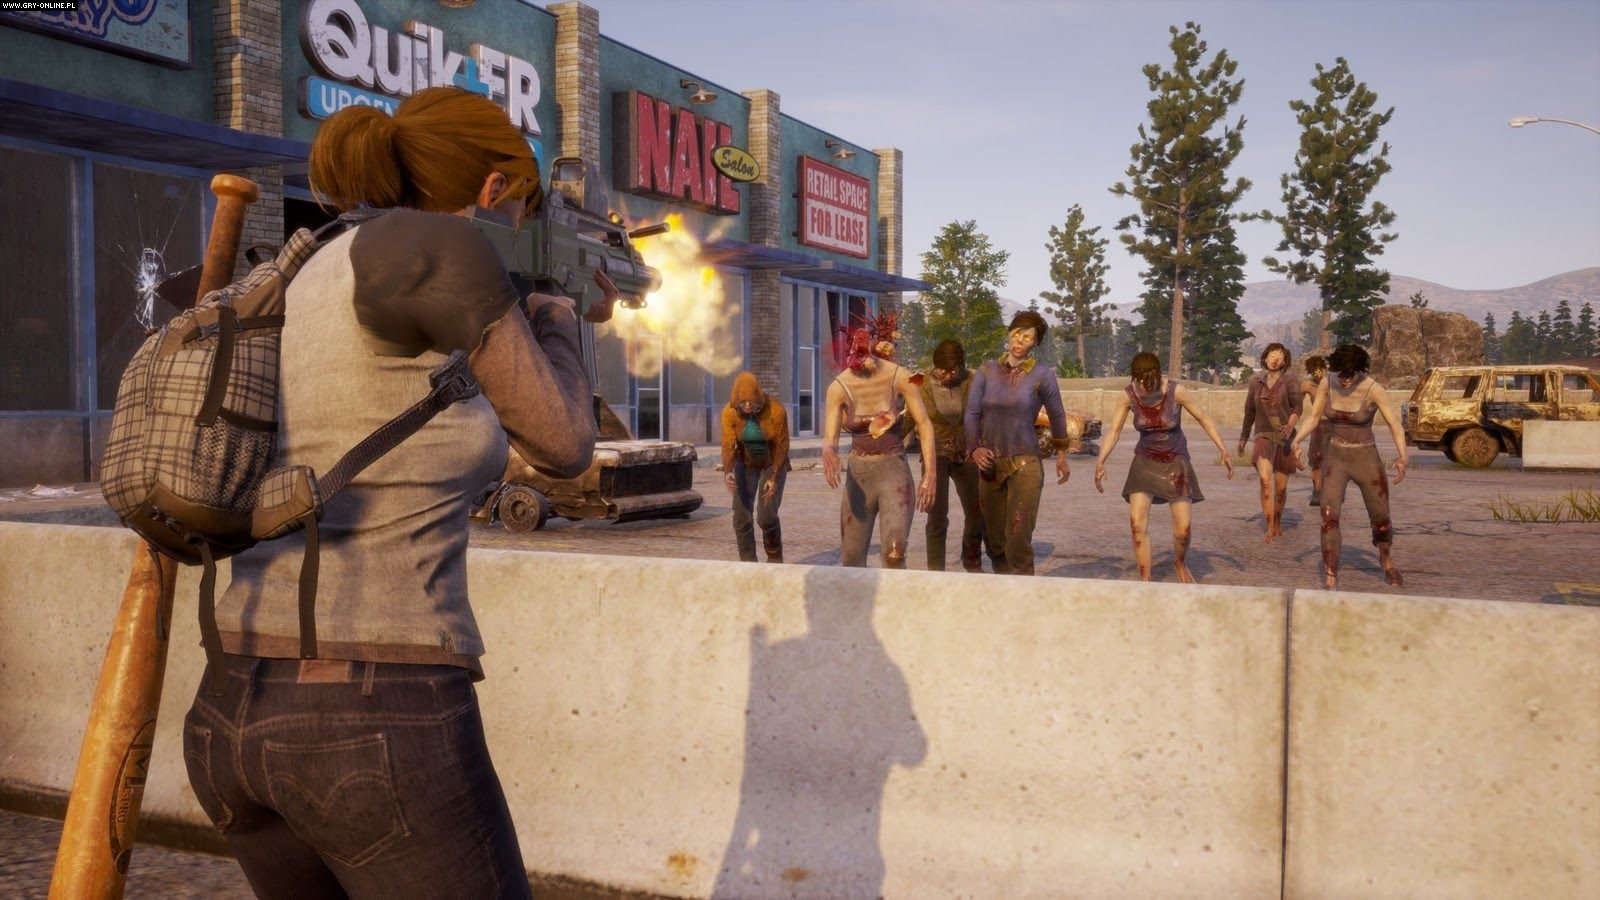 State of Decay 2 PC, XONE Games Image 3/29, Undead Labs, Xbox Game Studios / Microsoft Studios